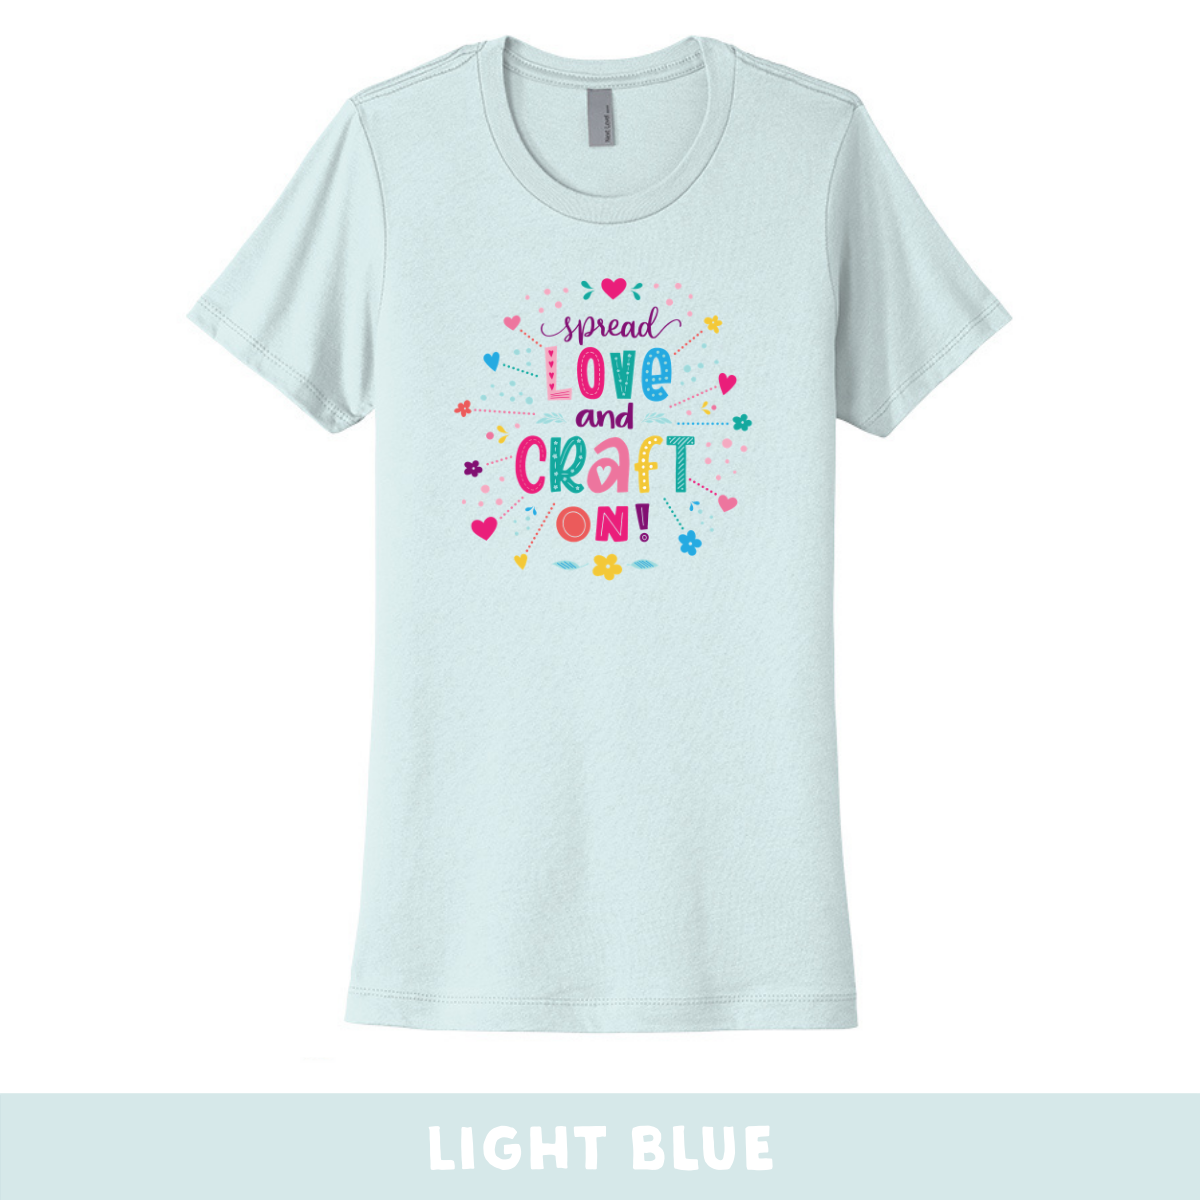 Light Blue - Crew Neck Boyfriend Tee - Spread Love and Craft On